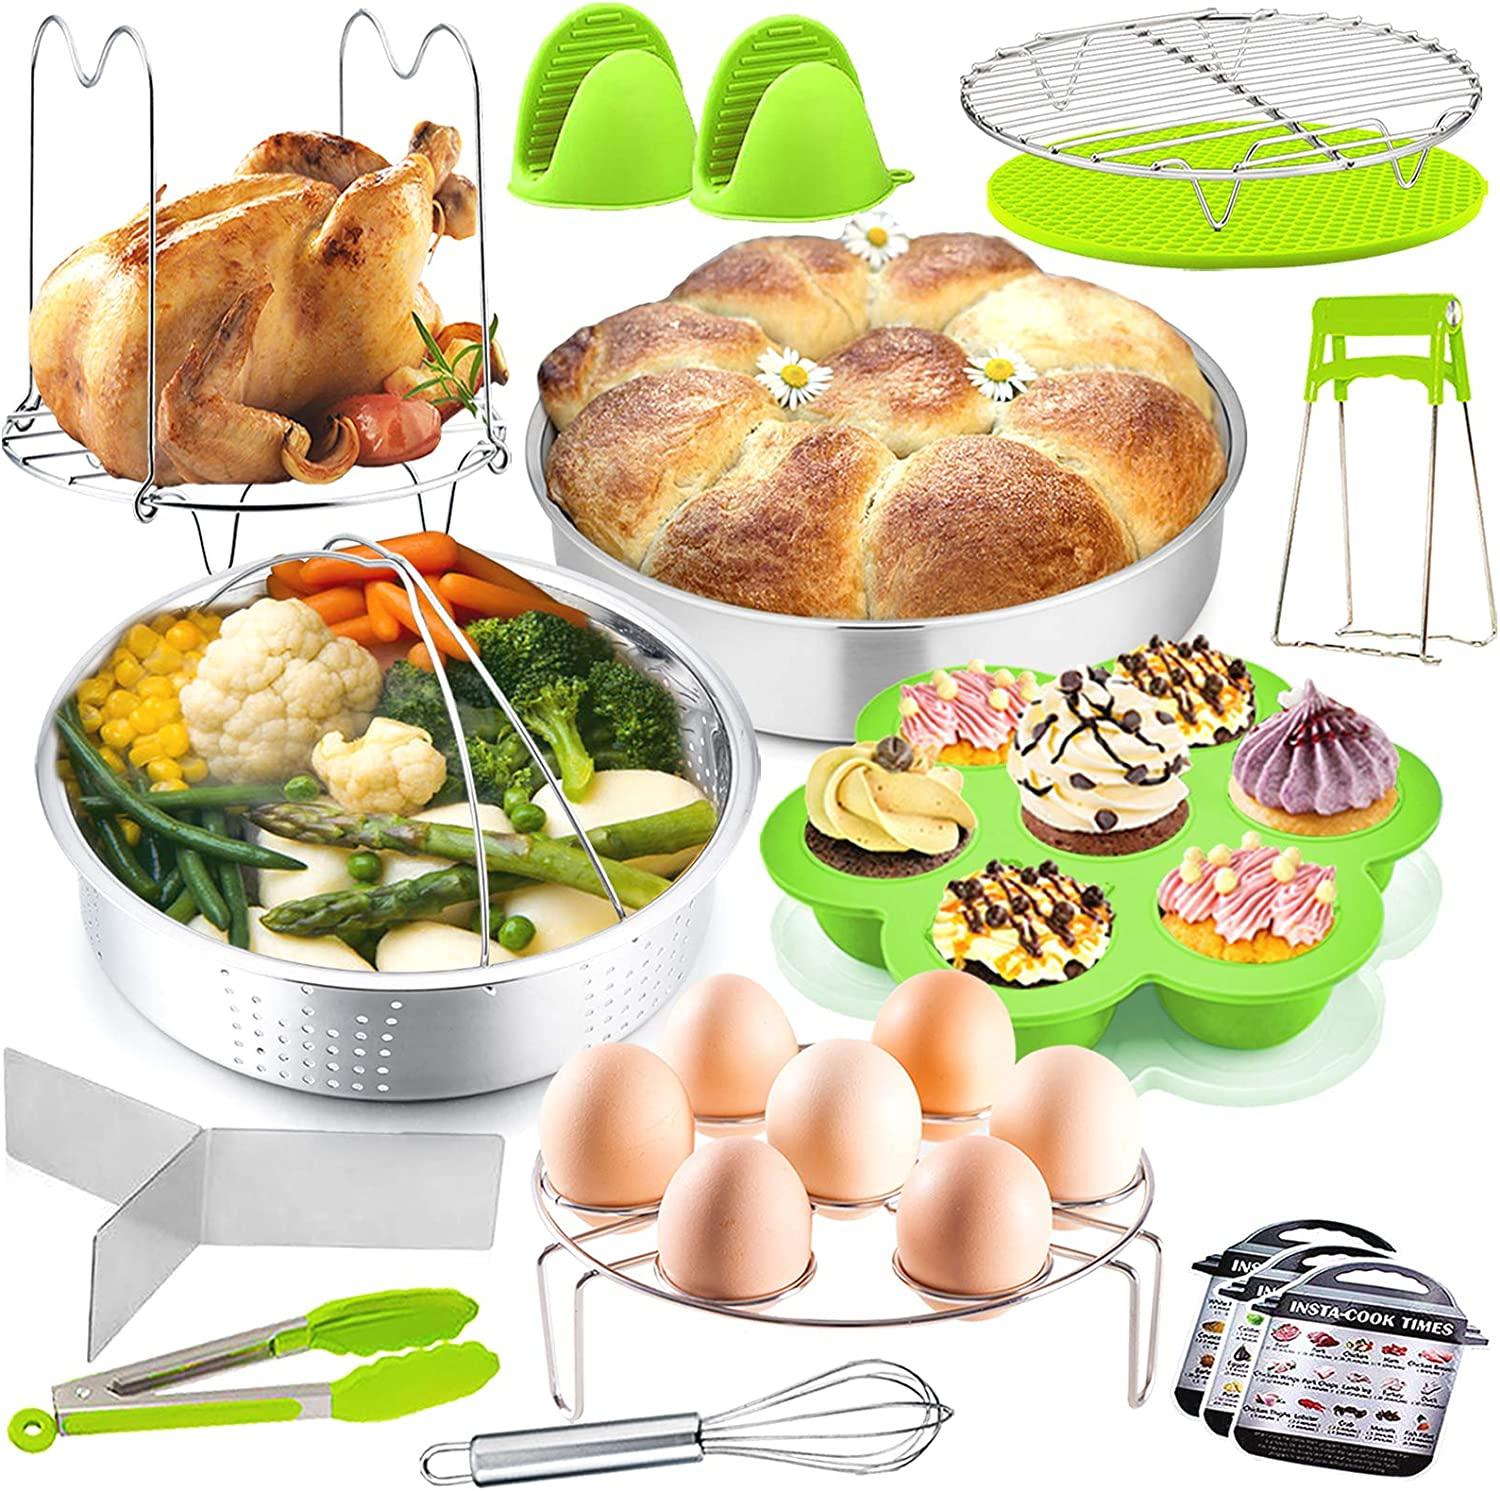 P&P CHEF 17-Pieces Pressure Cooker Pot Accessories Set, Instant Steamer Accessories Kit for Cooking, Steaming & Serving, Steamer Basket, Cake Pan, Egg Rack, Egg Bites Mold and More Kitchen Tools